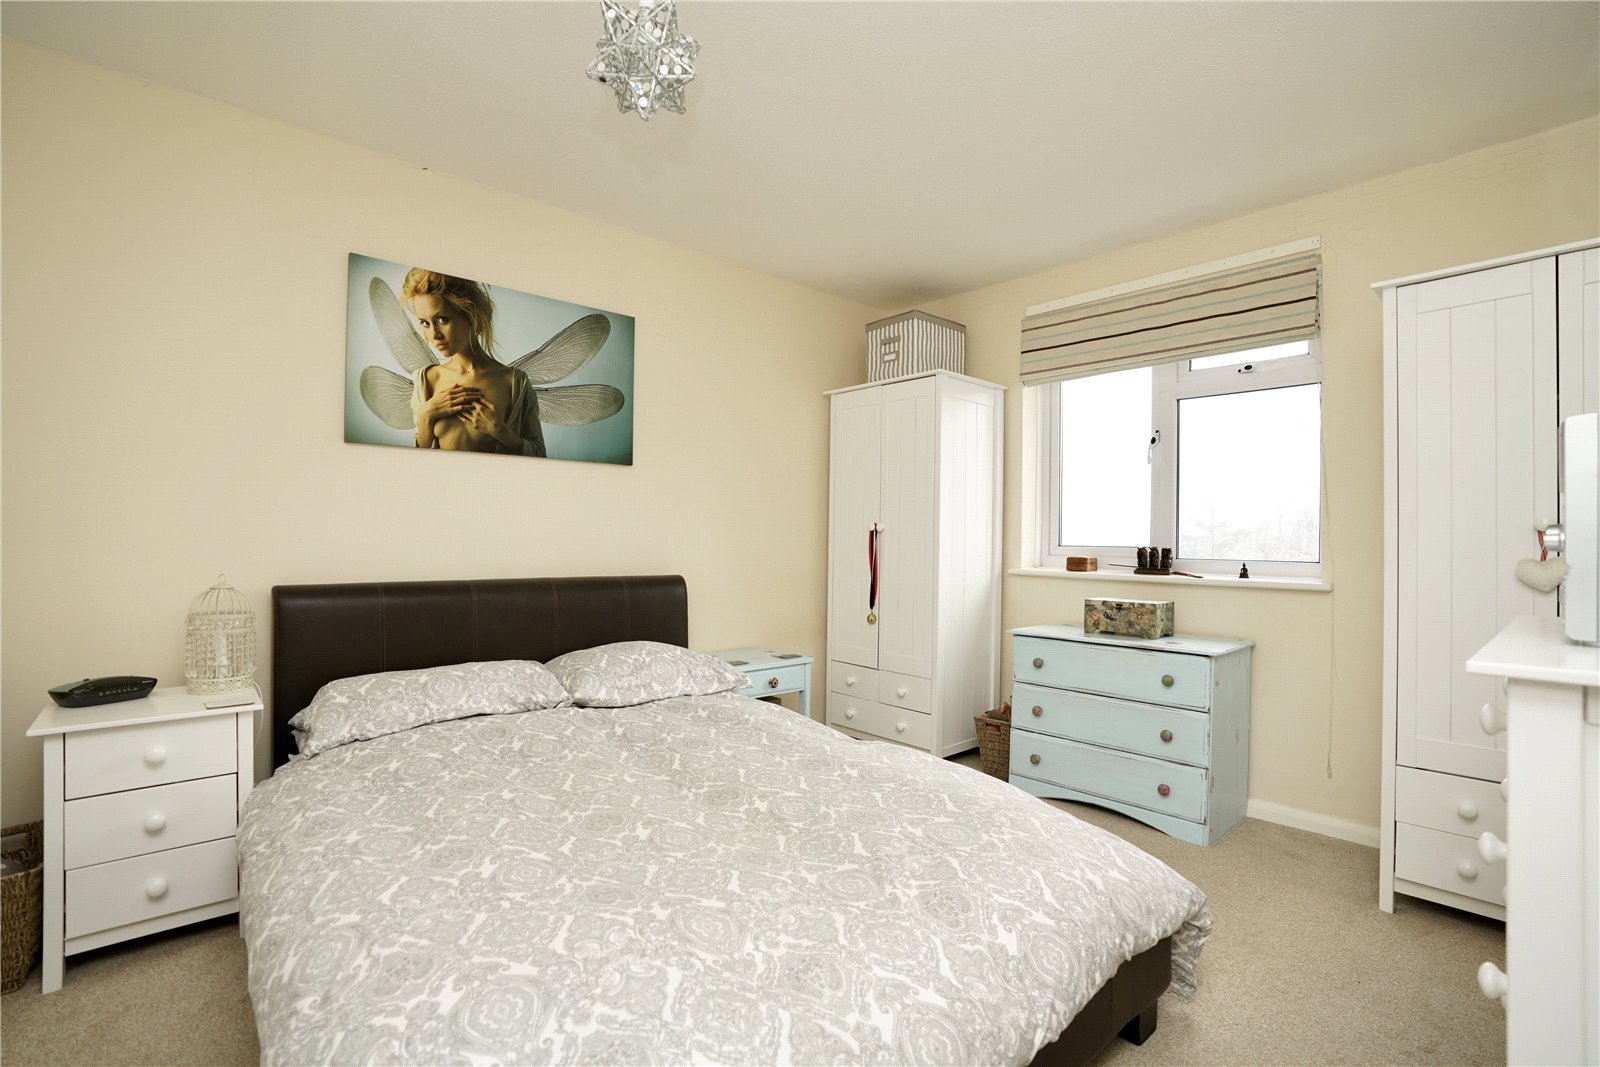 3 bed house for sale in Henbrook, St. Neots 5